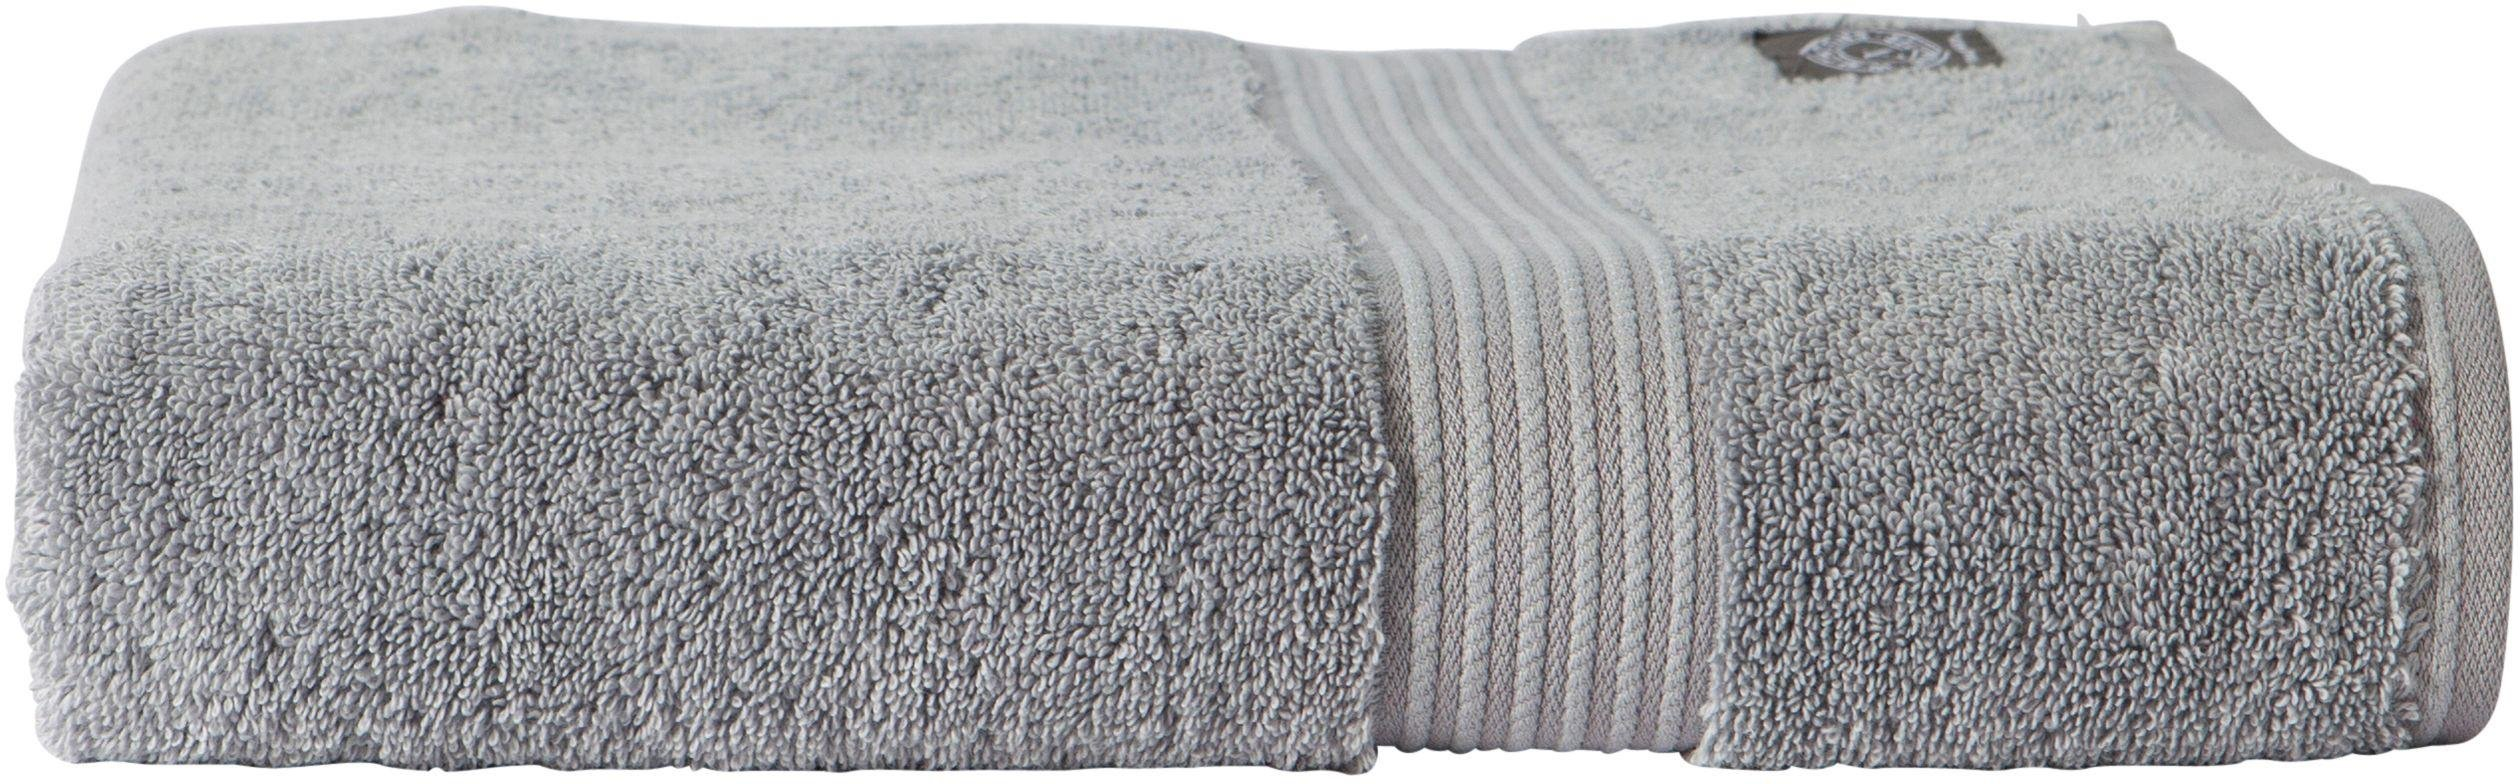 Image of Christy - Supreme Hygro - Bath - Towel - Silver